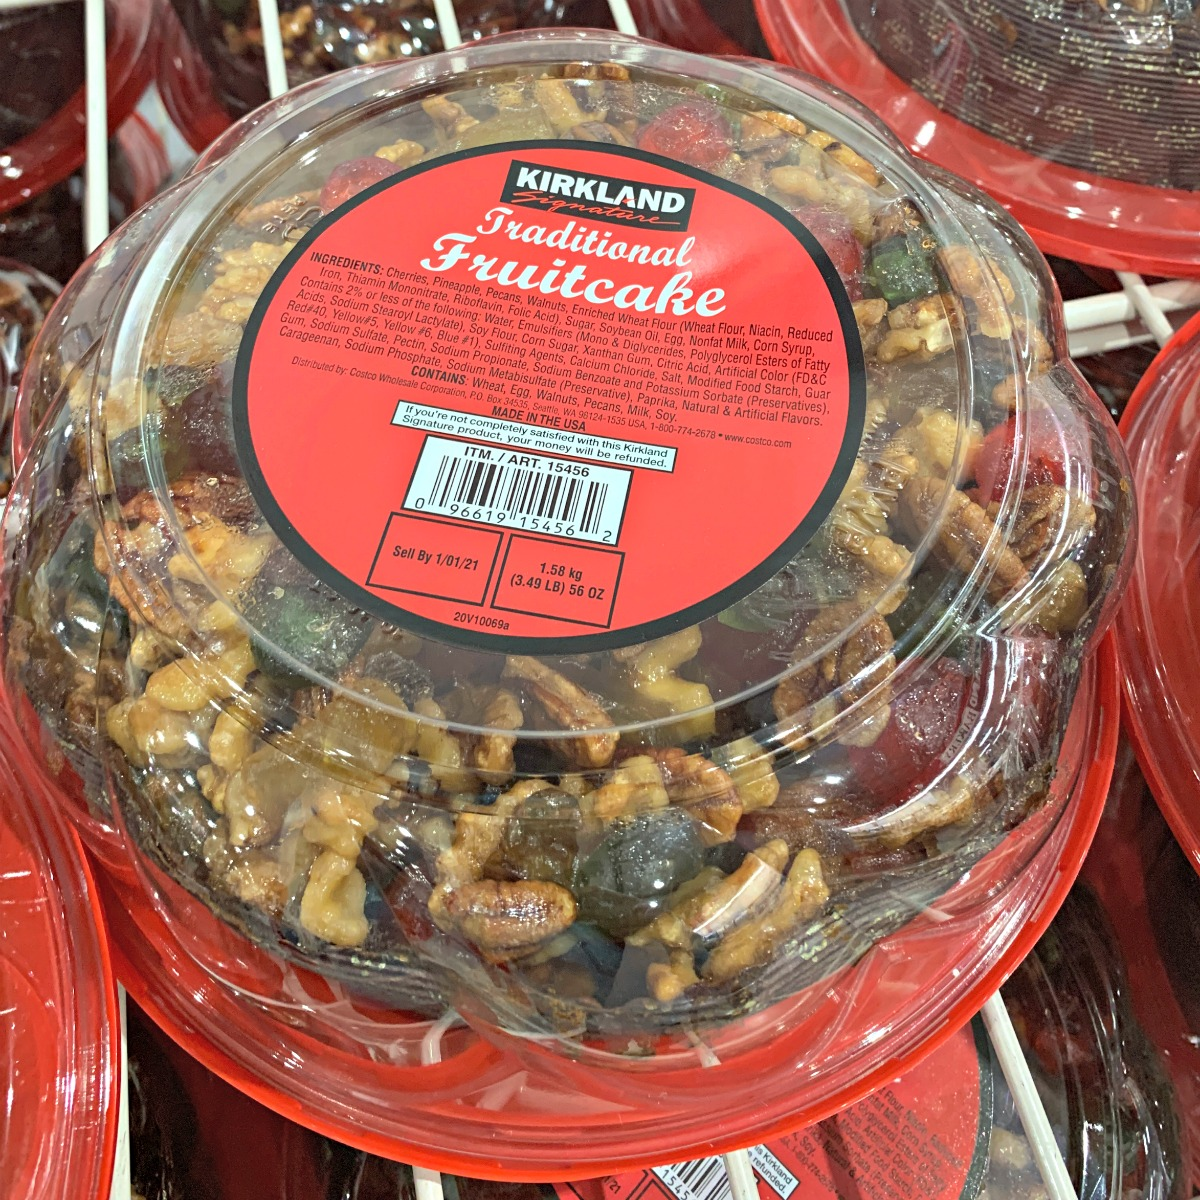 traditional fruitcake in a container at Costco